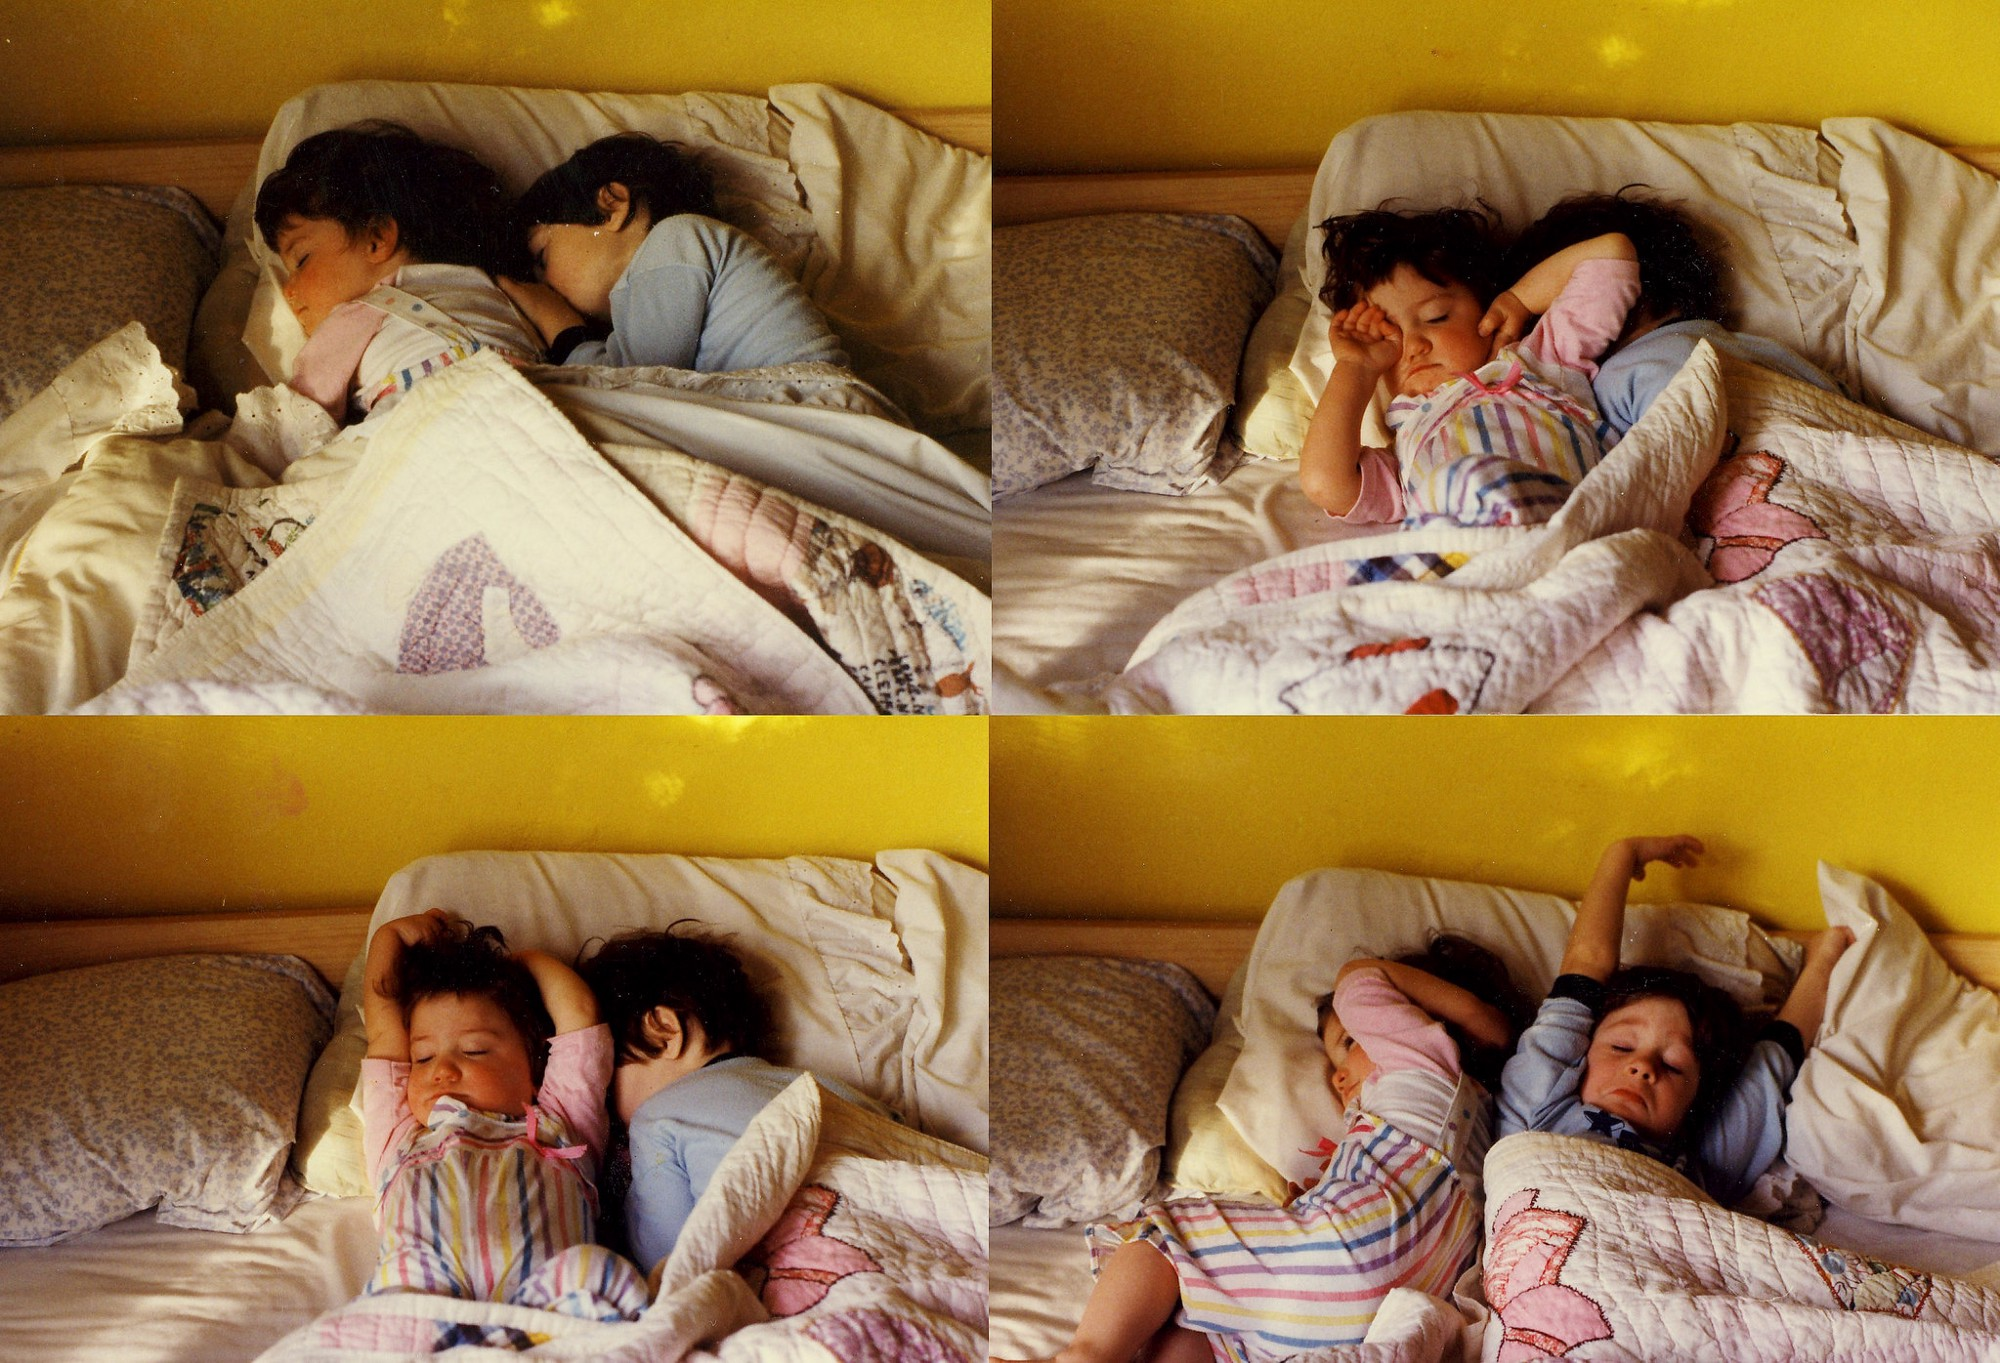 4 vintage family photos of two children sleeping in bed, arranged in a grid pattern.